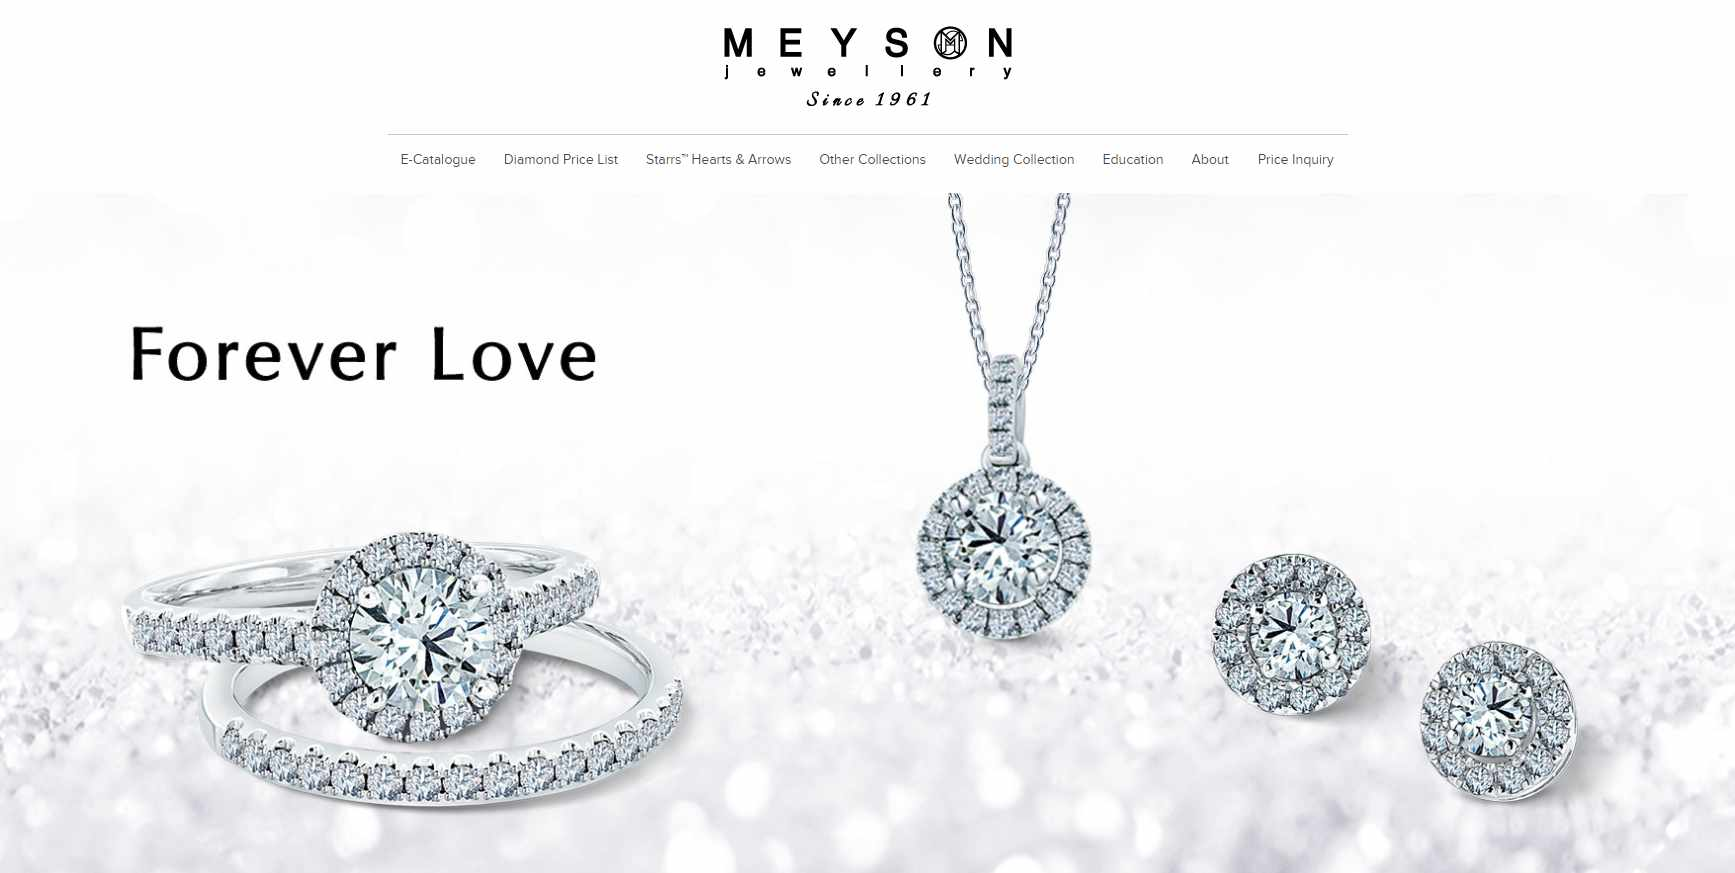 MEyson Top Jewellery Stores in Singapore.